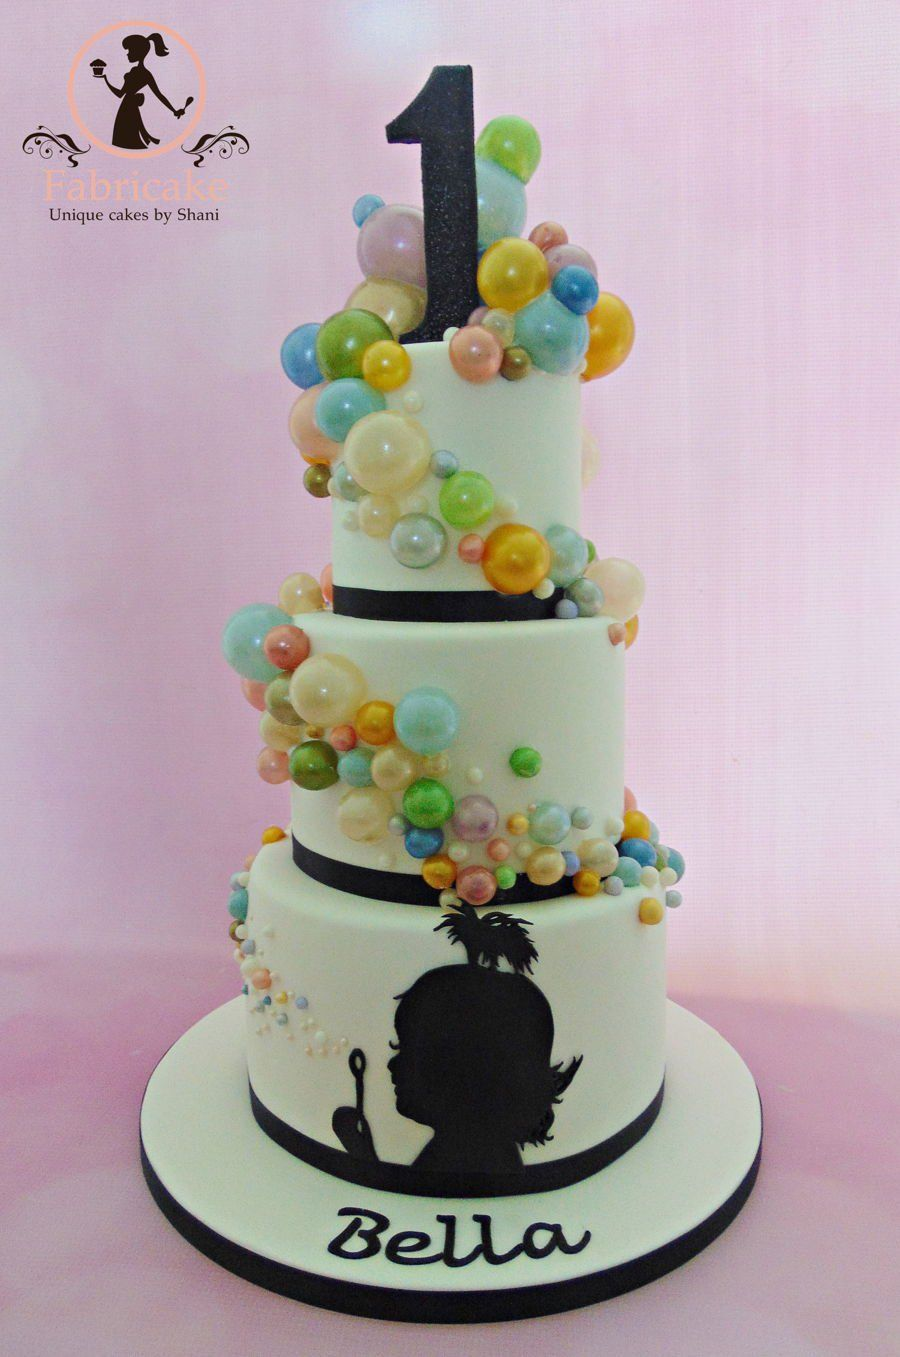 Bubble Cake Silhouette Cake With Gelatine Bubbles Theme